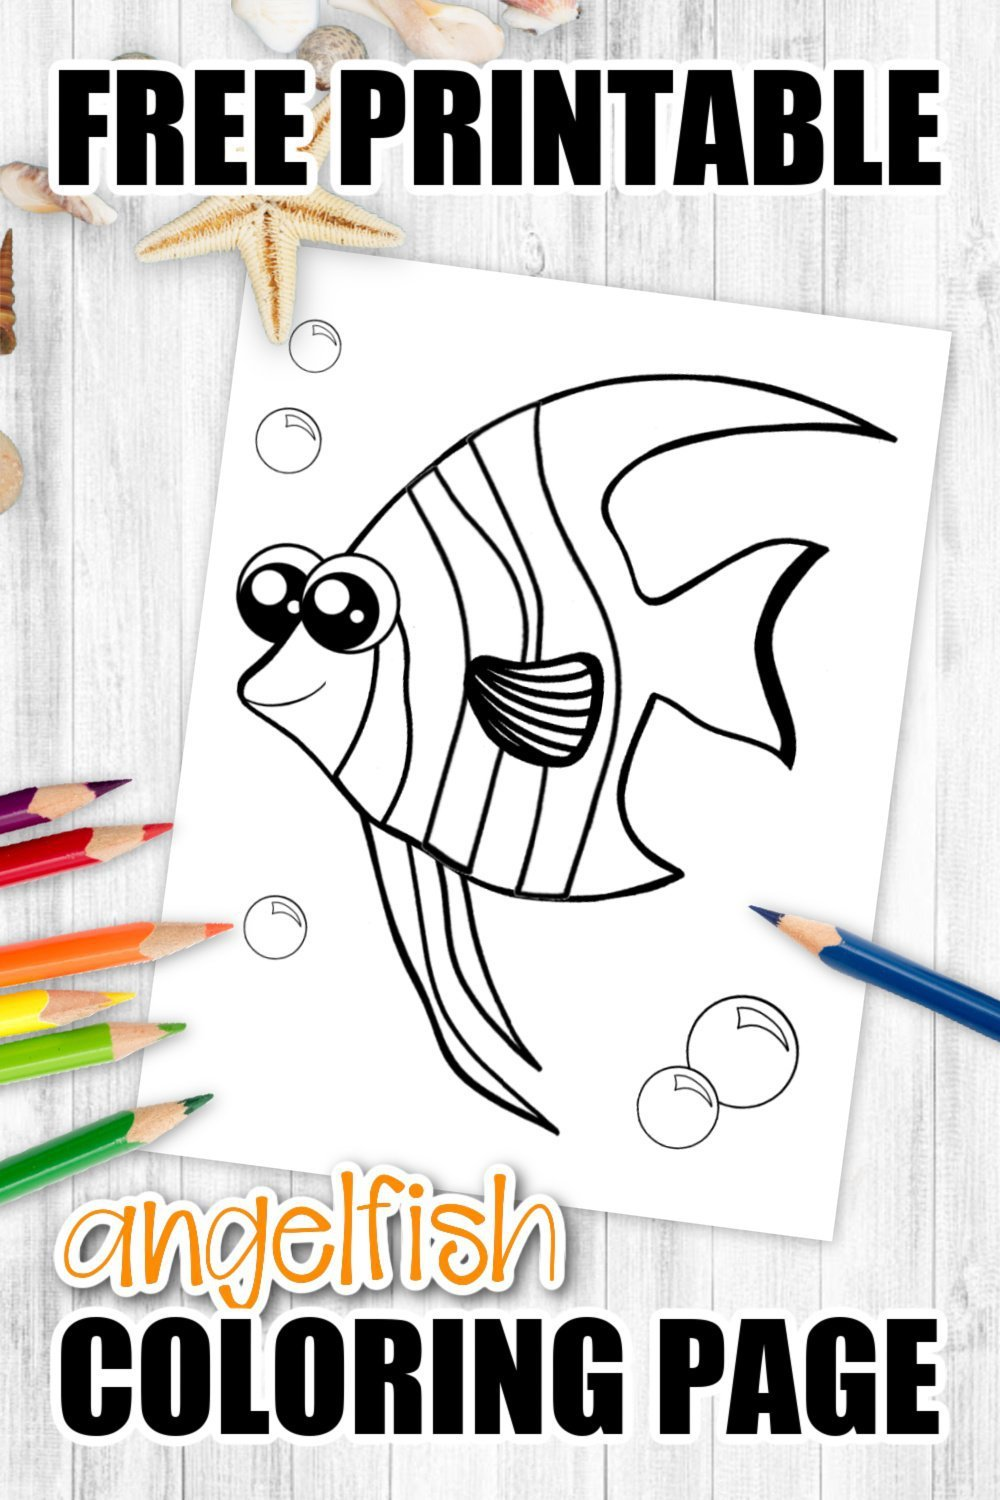 Here's a truly beautiful way for your kids to learn about the life beneath our oceans. This cute printable Angelfish coloring page is an ideal activity to learn the letter A or use as a sea themed craft for a kindergarten art project. Known for their stunning colors, this Angelfish coloring page encourages kids to express their creativity using all their favorite colors. Grab your free printable Angelfish coloring page today & watch your toddlers magically bring this ocean animal alive!